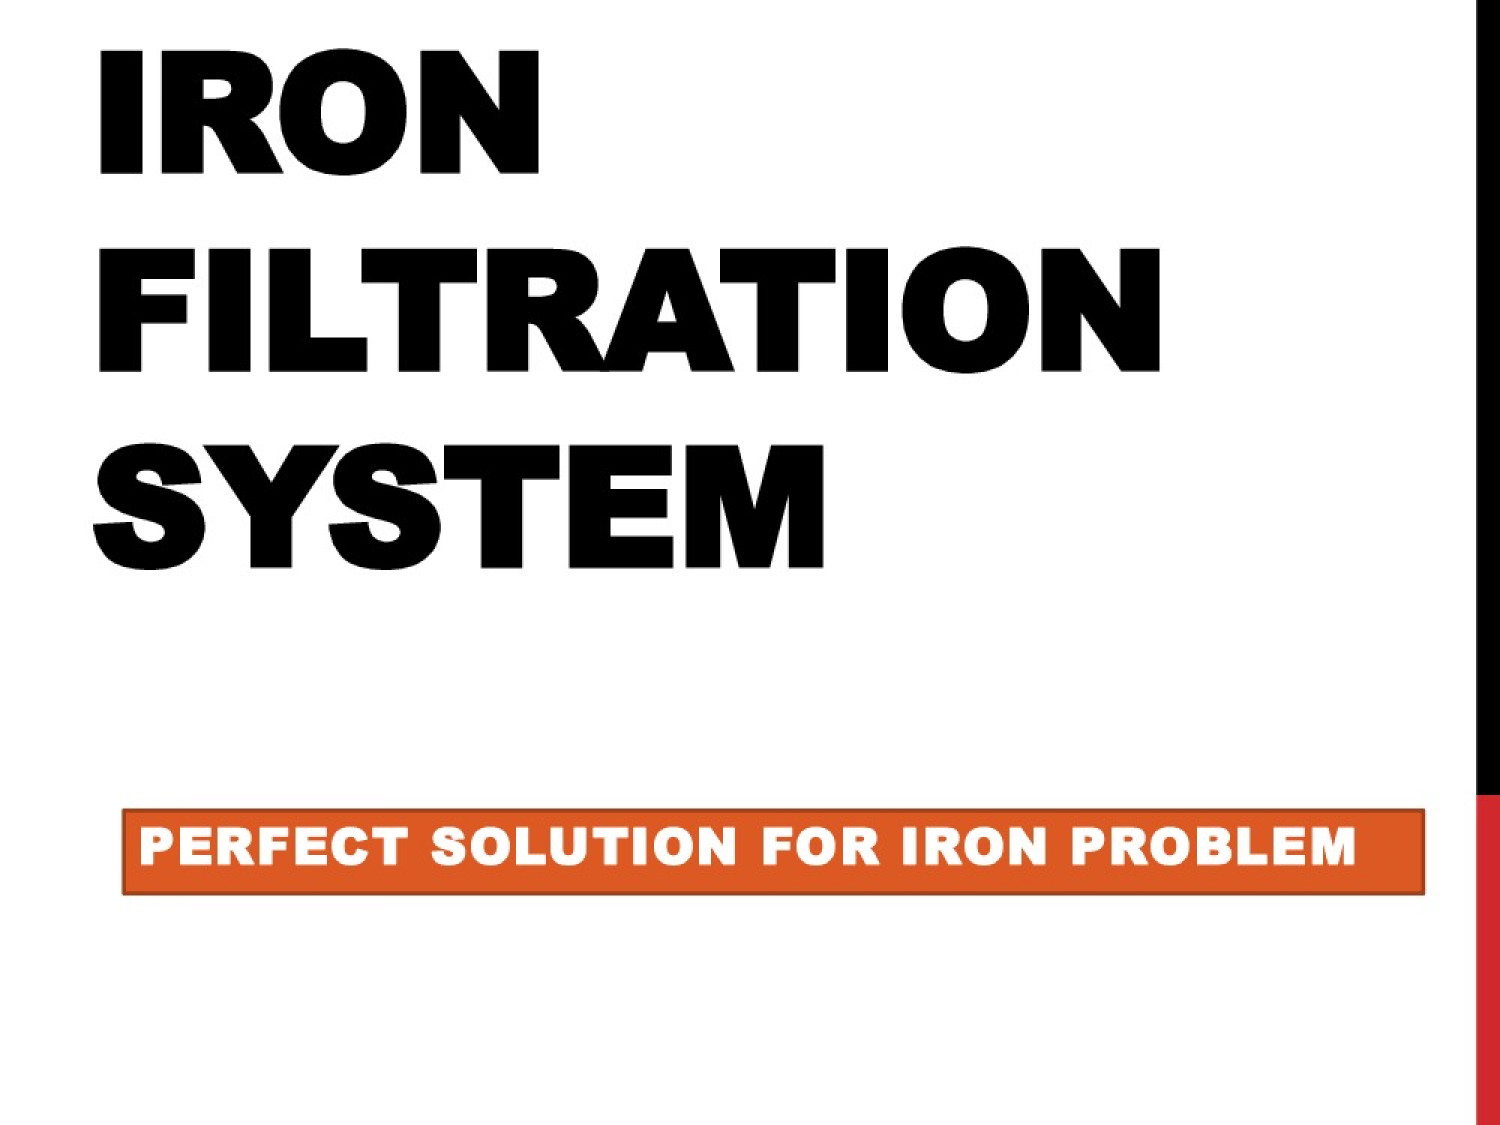 Iron Filtration System - Perfect Solution For Iron Problem Infographic